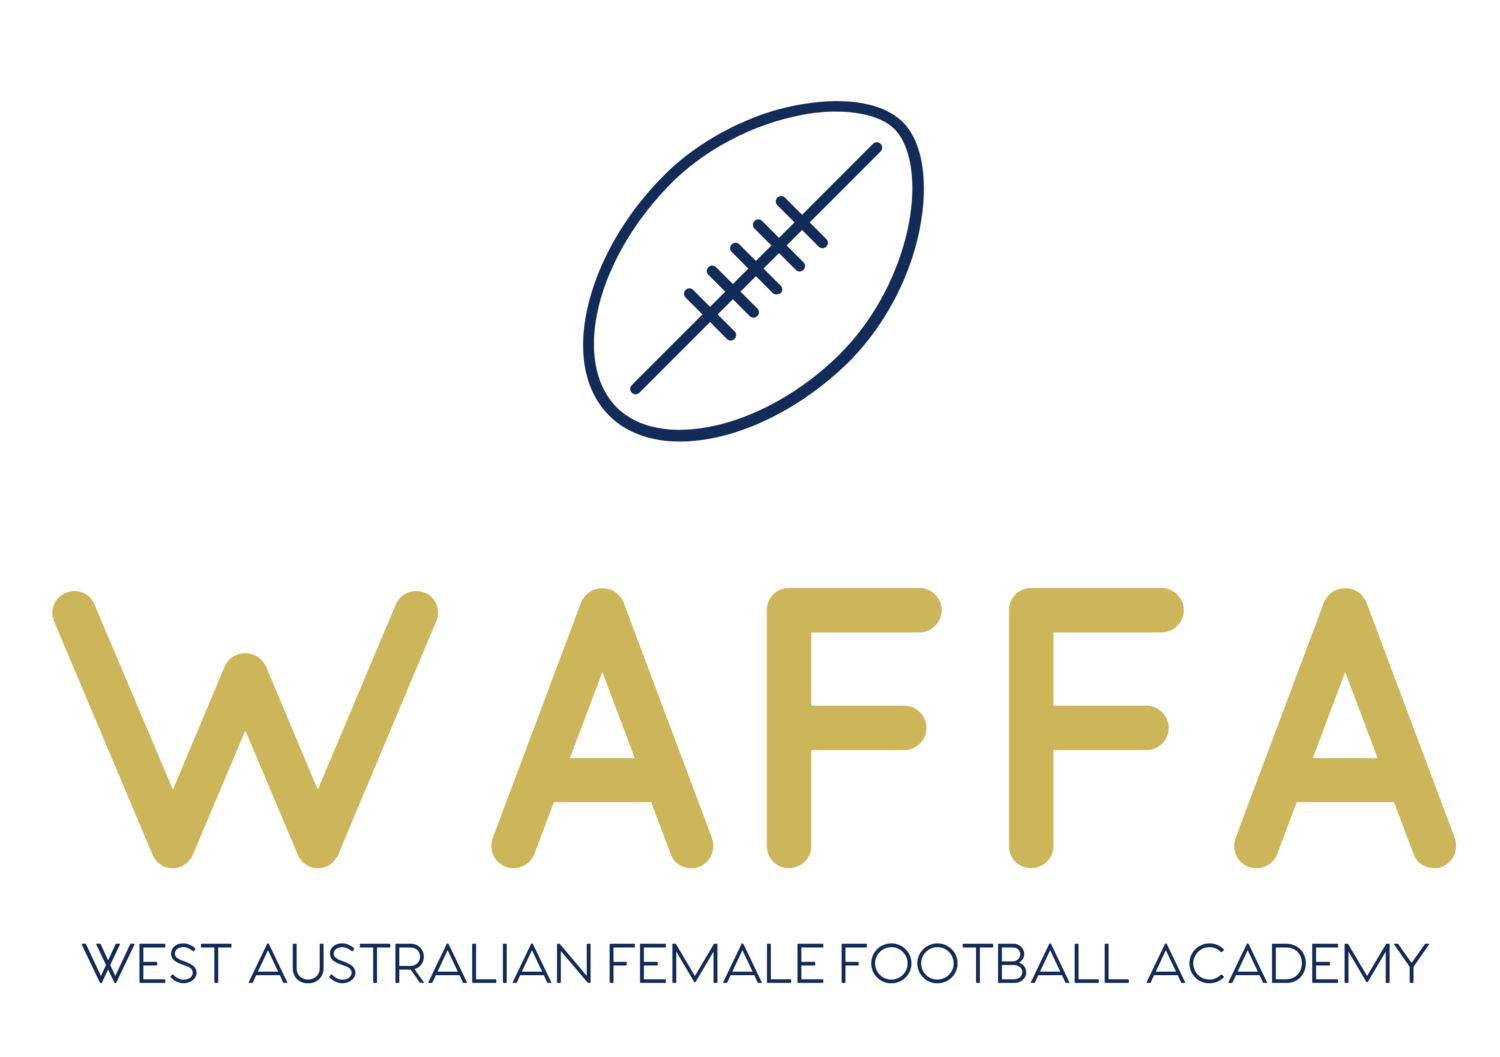 WAFFA - West Australian Female Football Academy